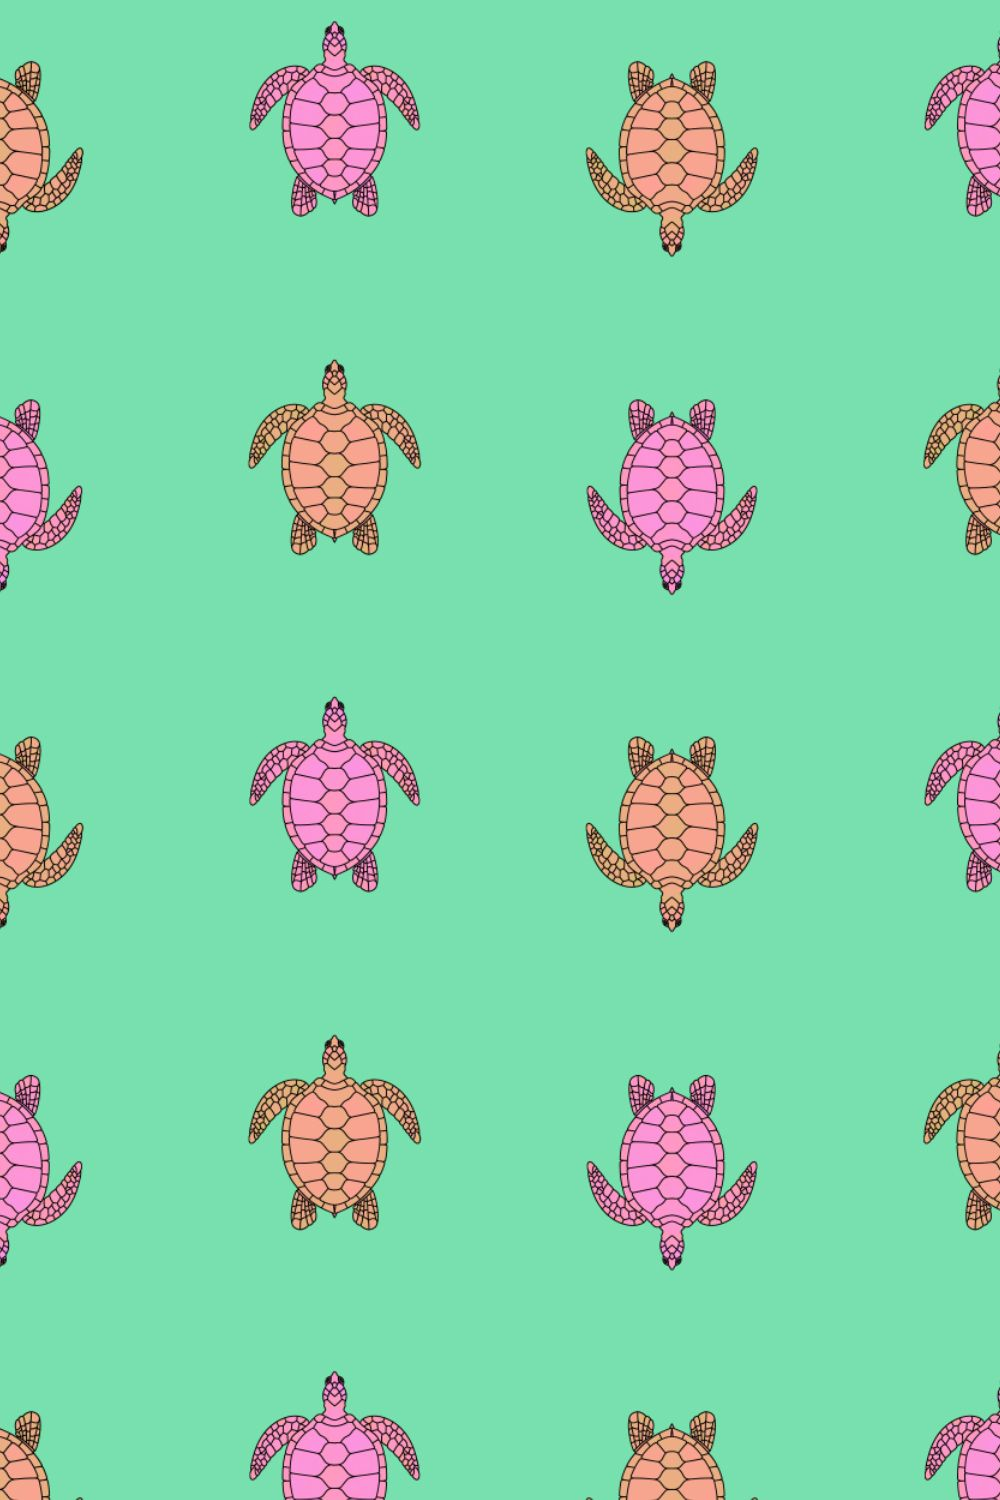 minimalist pattern of colorful sea turtles over the sea #digitalillustration #digitalpattern # handdrawnillustration #pattern #patterdesign #printpattern #seamlesspattern #turtles #surfacepatterdesign #surface #animalpattern